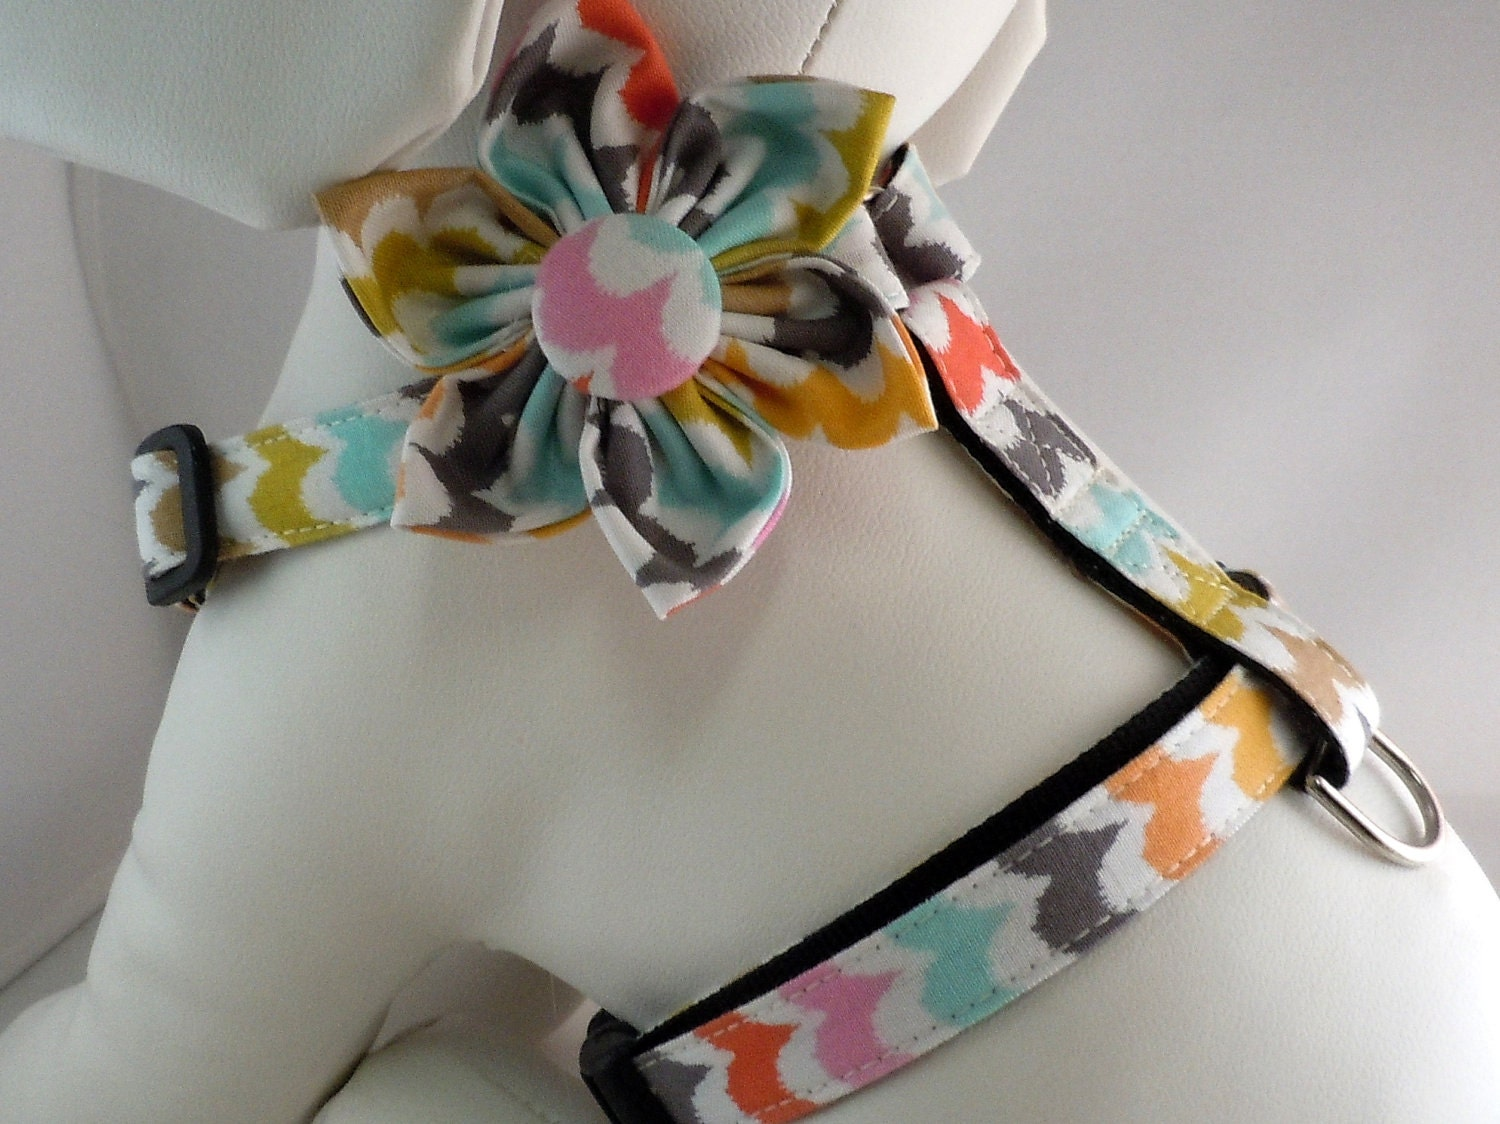 Dog Harness with Flower or Bow Tie Set - Traditional or Step-In - Pick Any Fabric in Shop - LearnedStitchworks